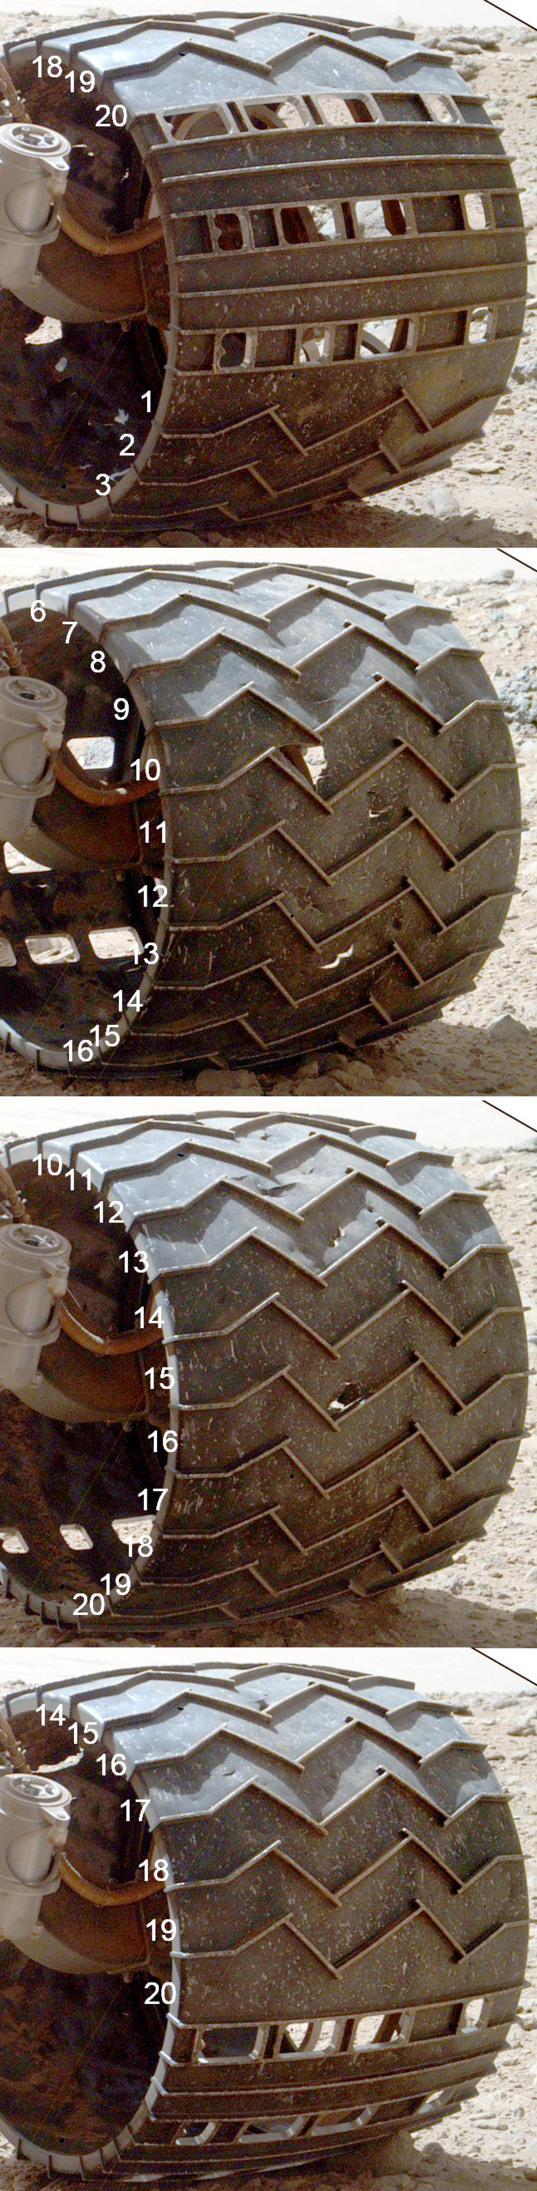 Curiosity wheel survey, sol 513: Left middle wheel